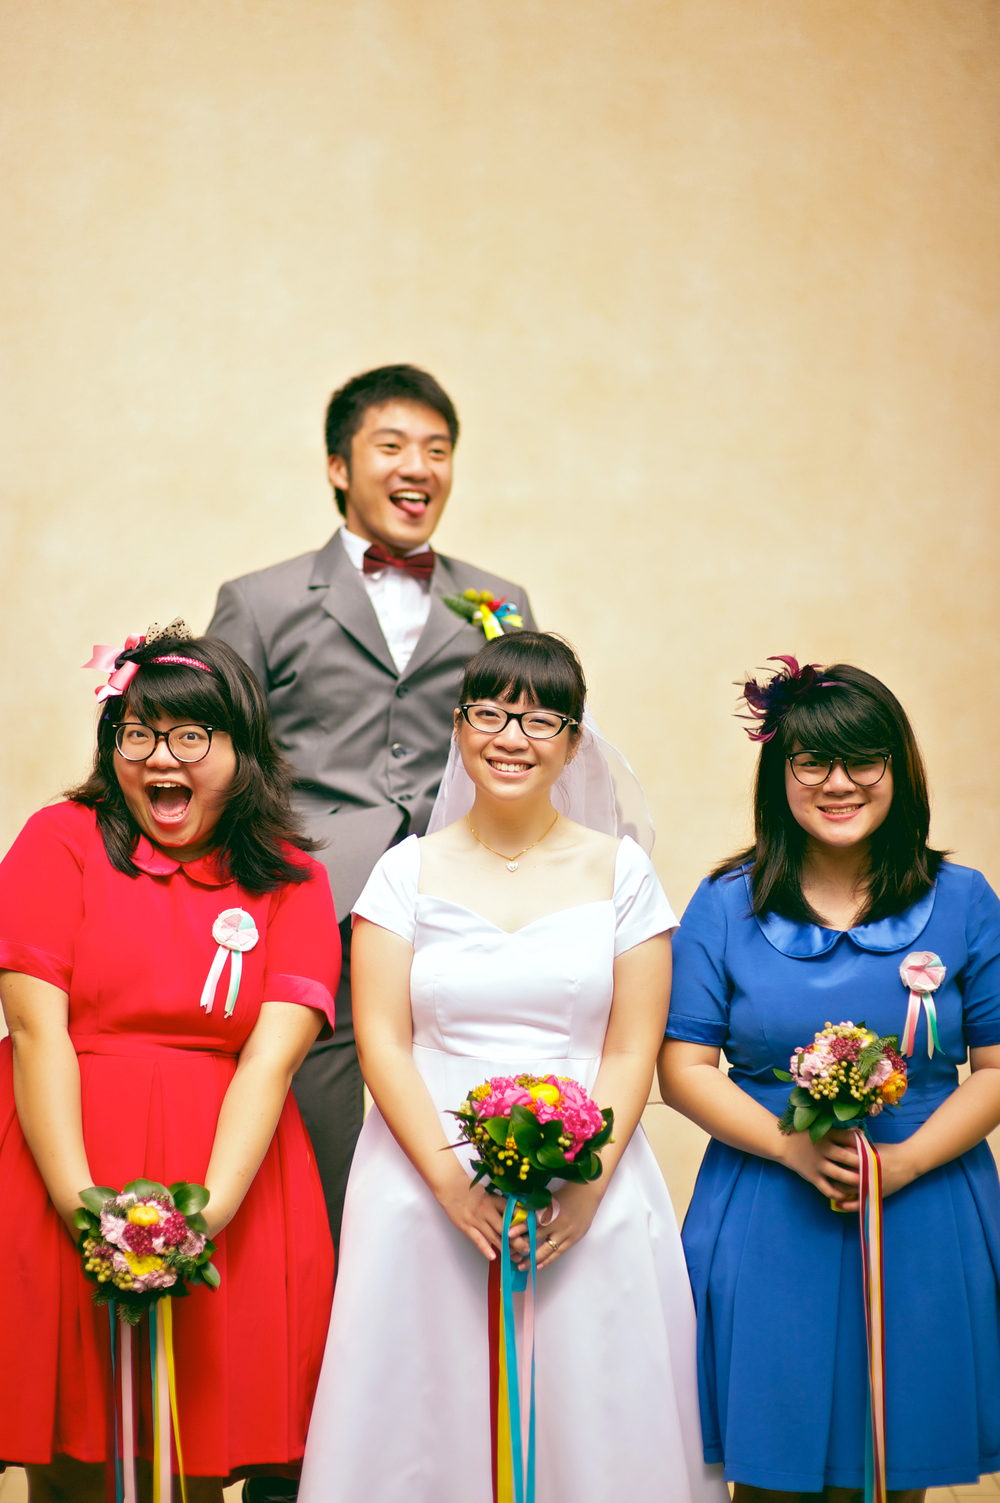 Weiyan's sister's wedding in 2011